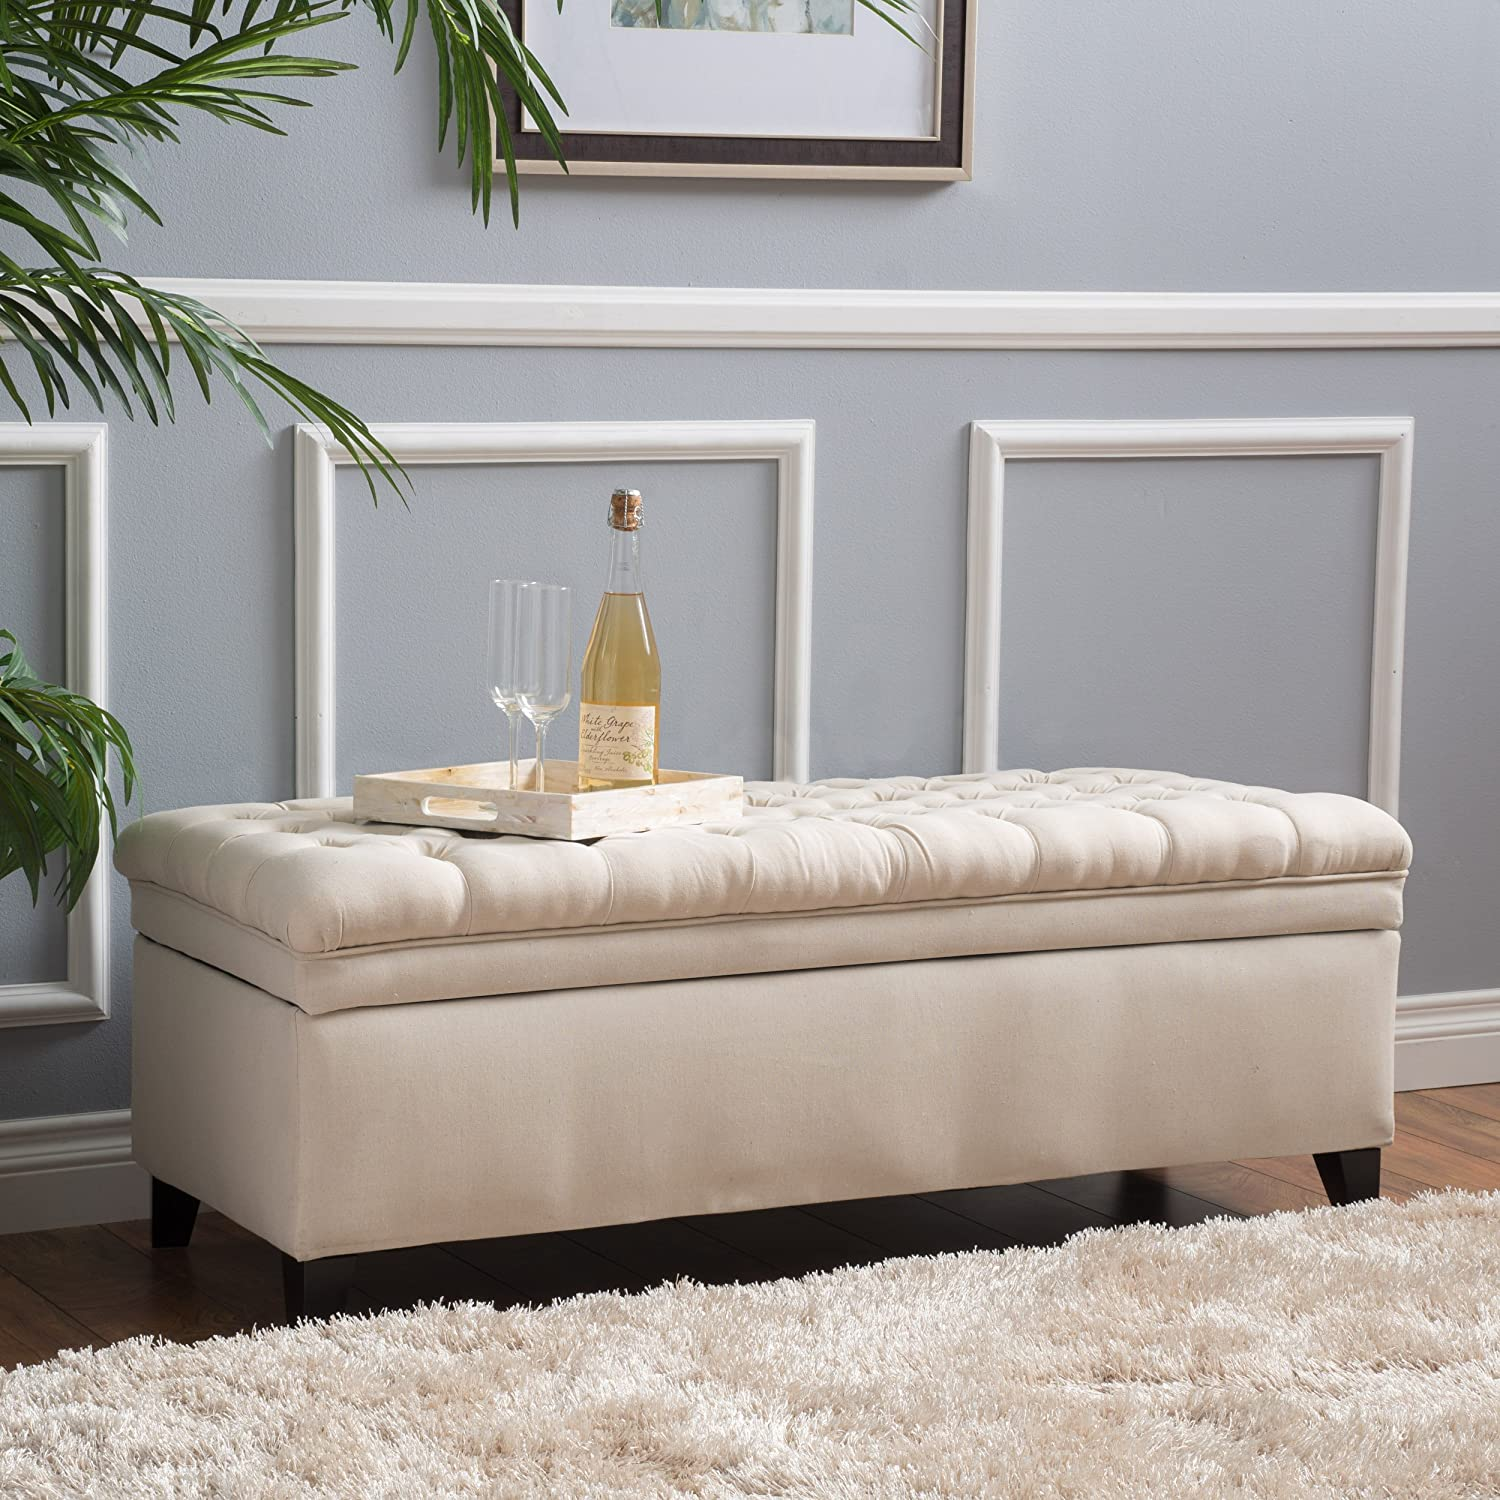 Christopher Night Storage Bench for Bedroom